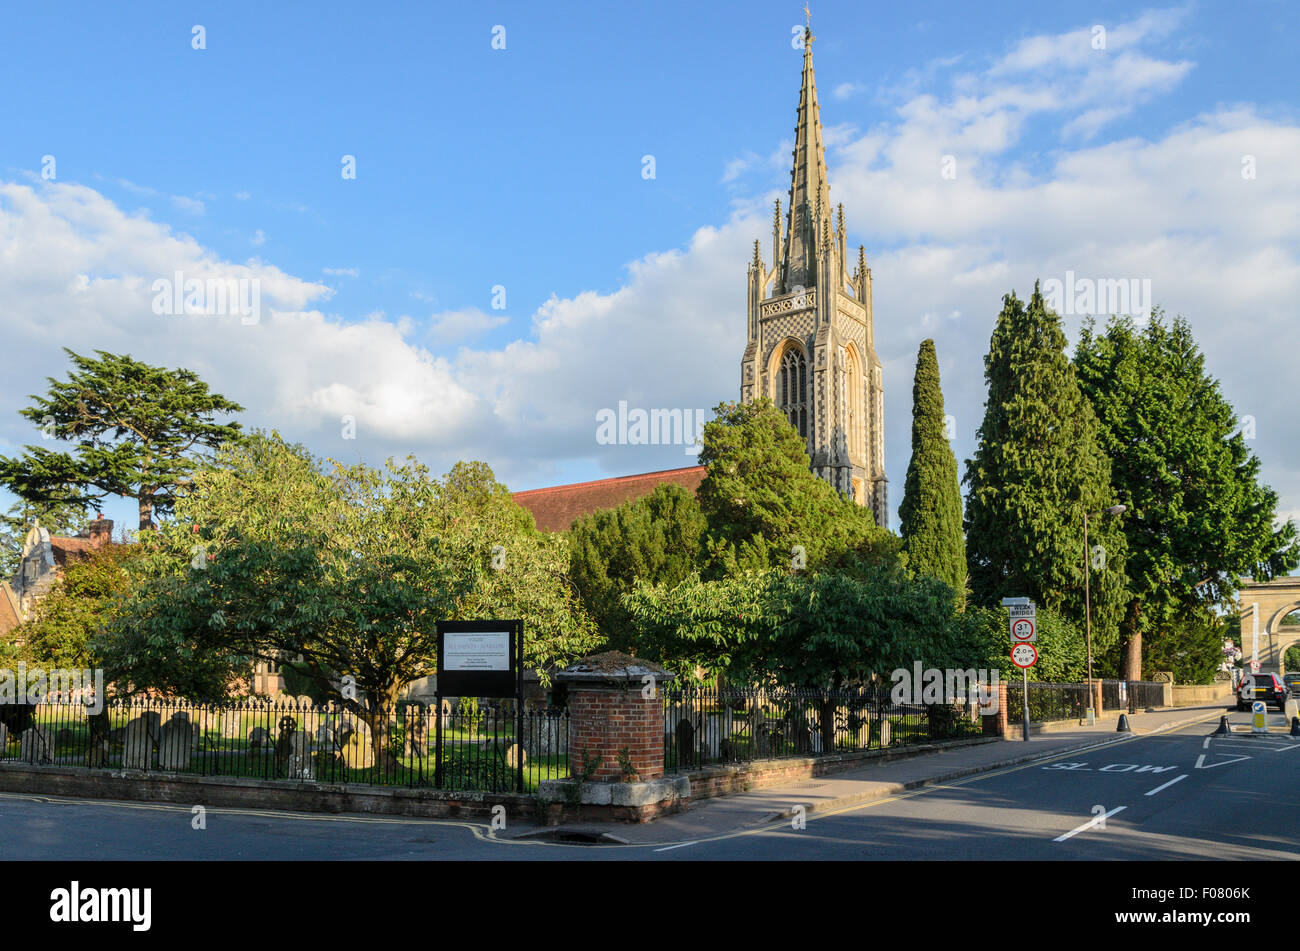 All Saints Church, Marlow,Buckinghamshire, England, UK. - Stock Image